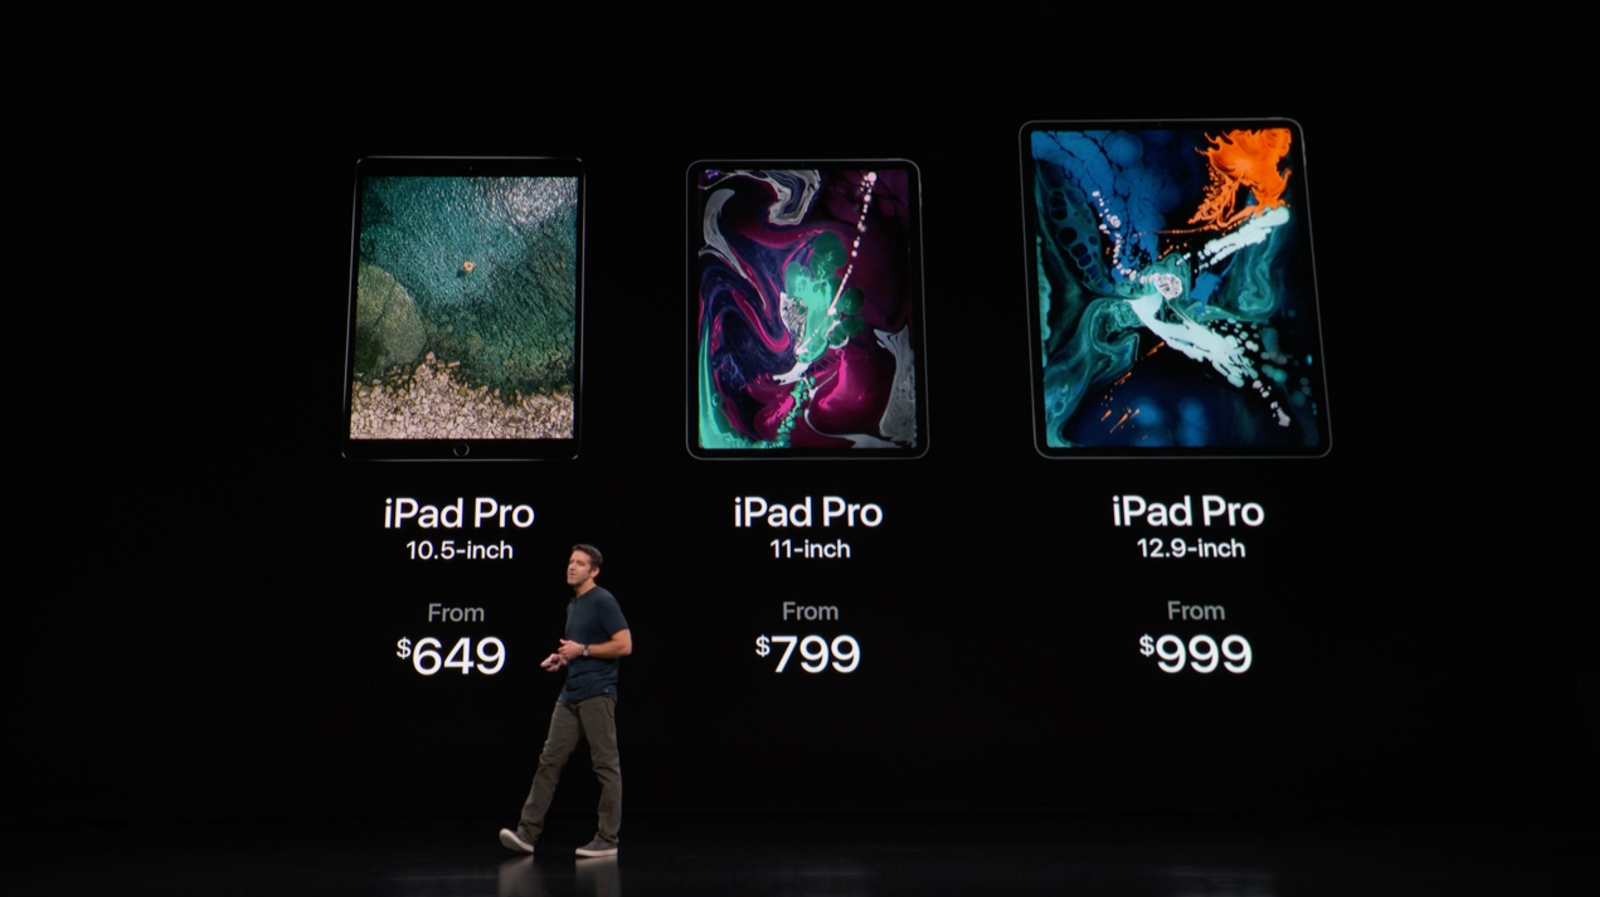 Looking to compare iPad models? Here's how the 2018 lineup stacks up